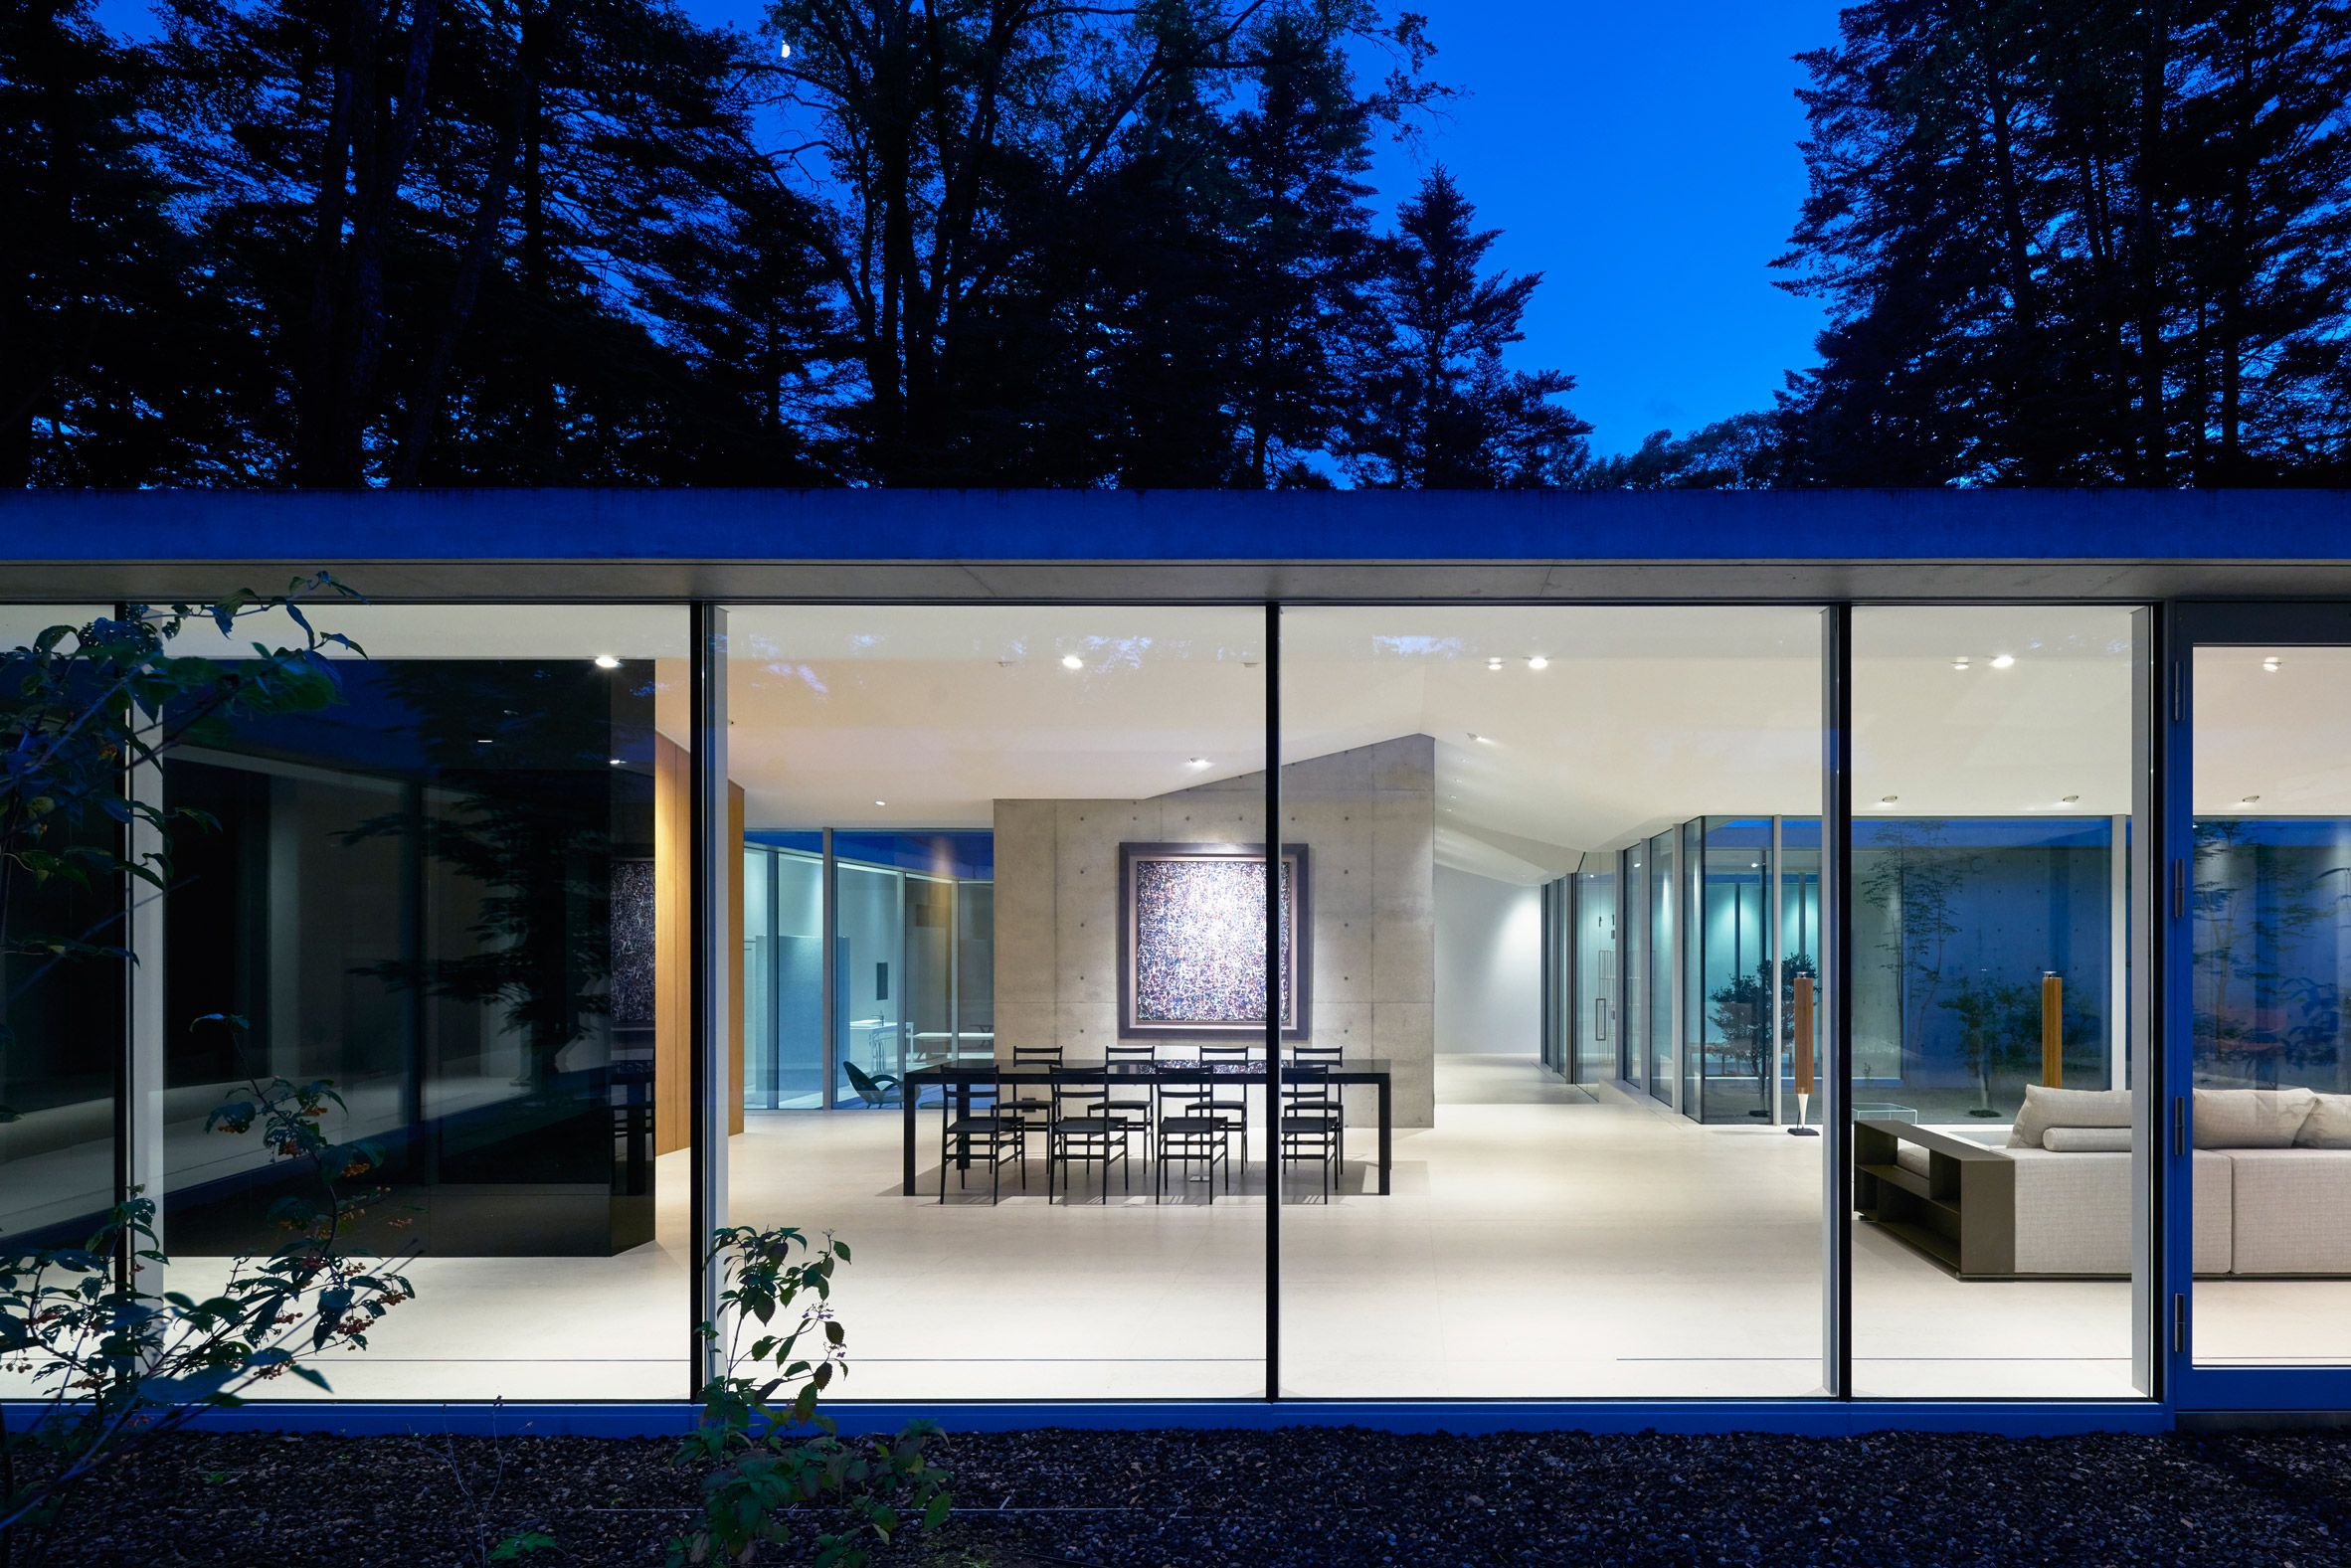 Enclosed courtyards frame views of trees and sky at house in a ...